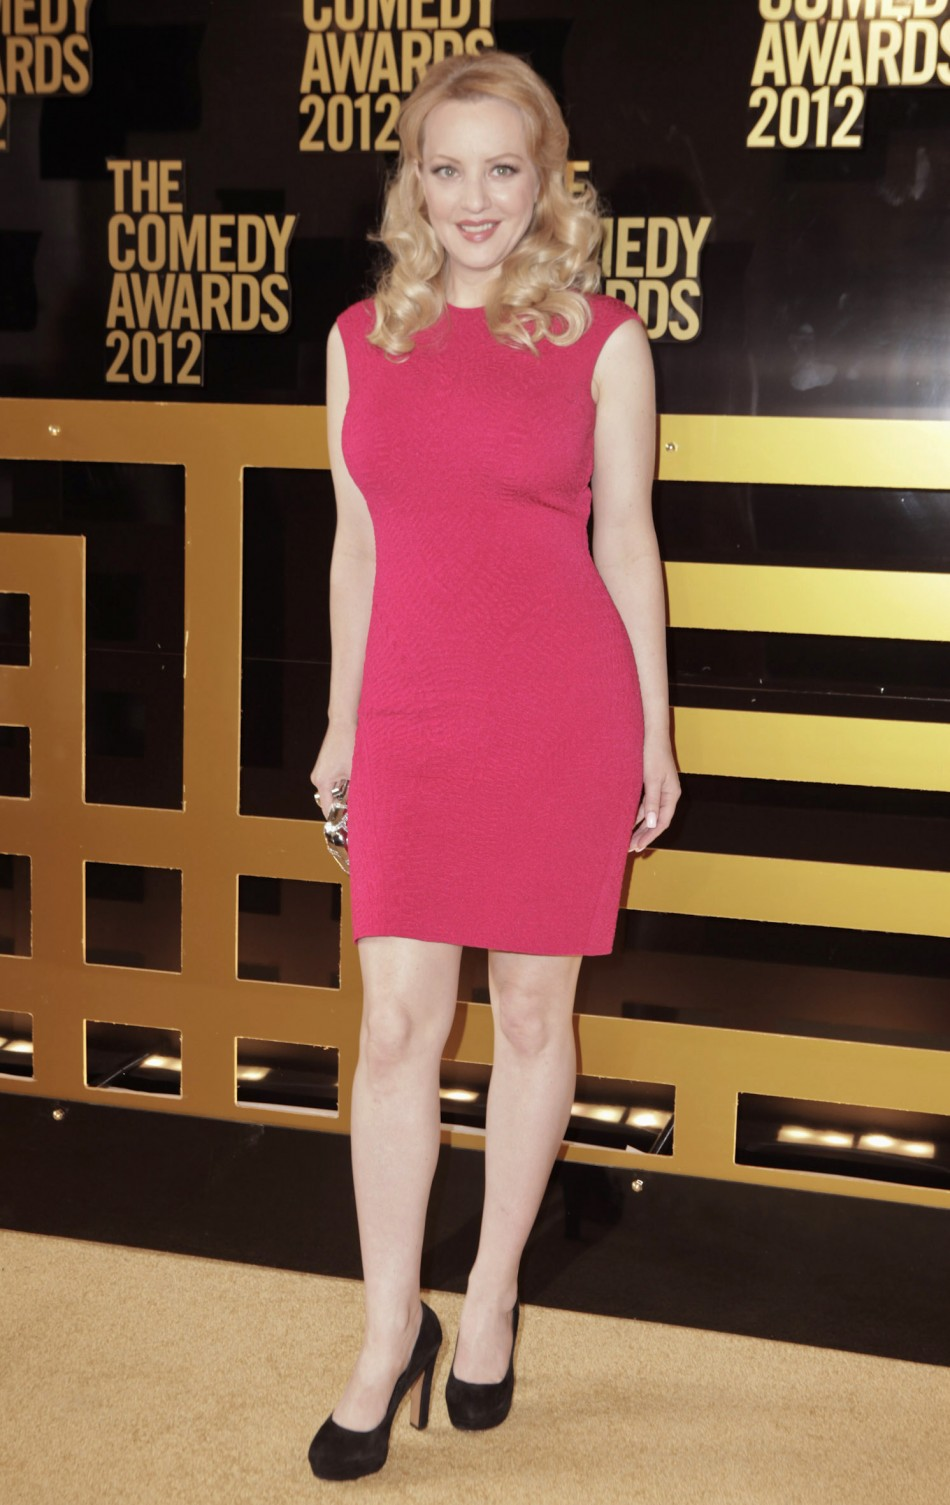 Wendi McLendon-Covey arrives for Comedy Awards 2012 in New York